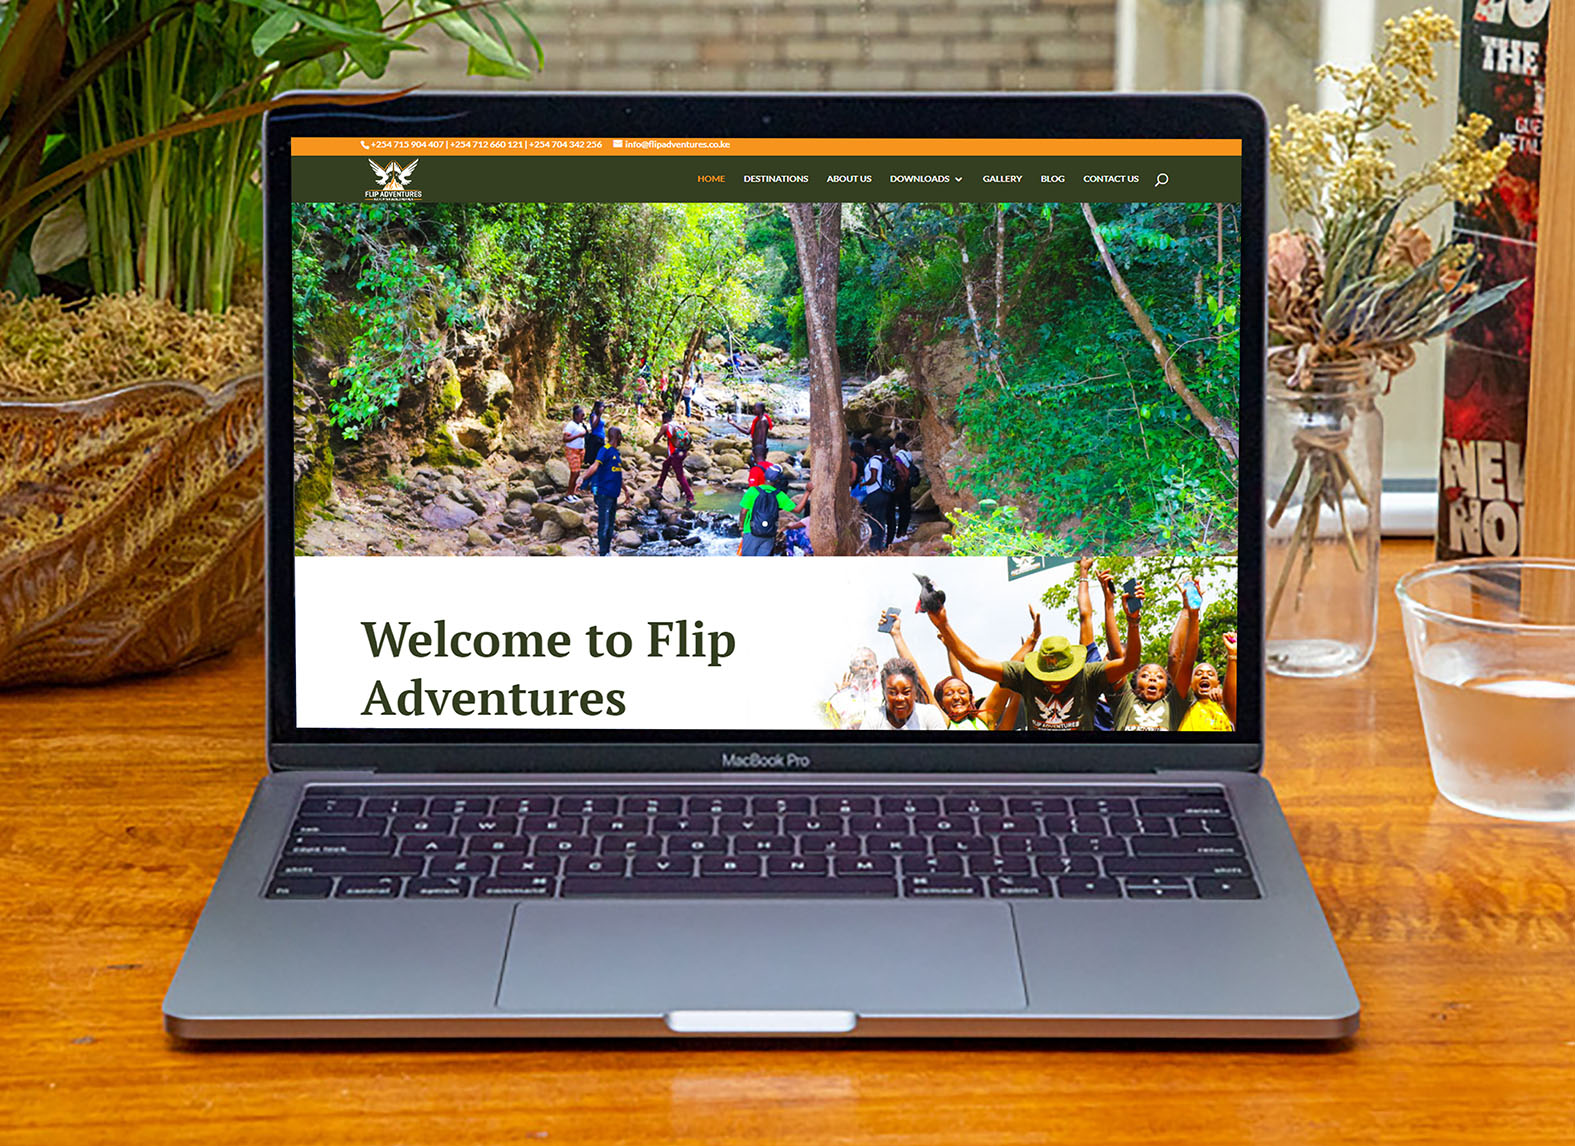 Flip Adventures Website Design in Kenya